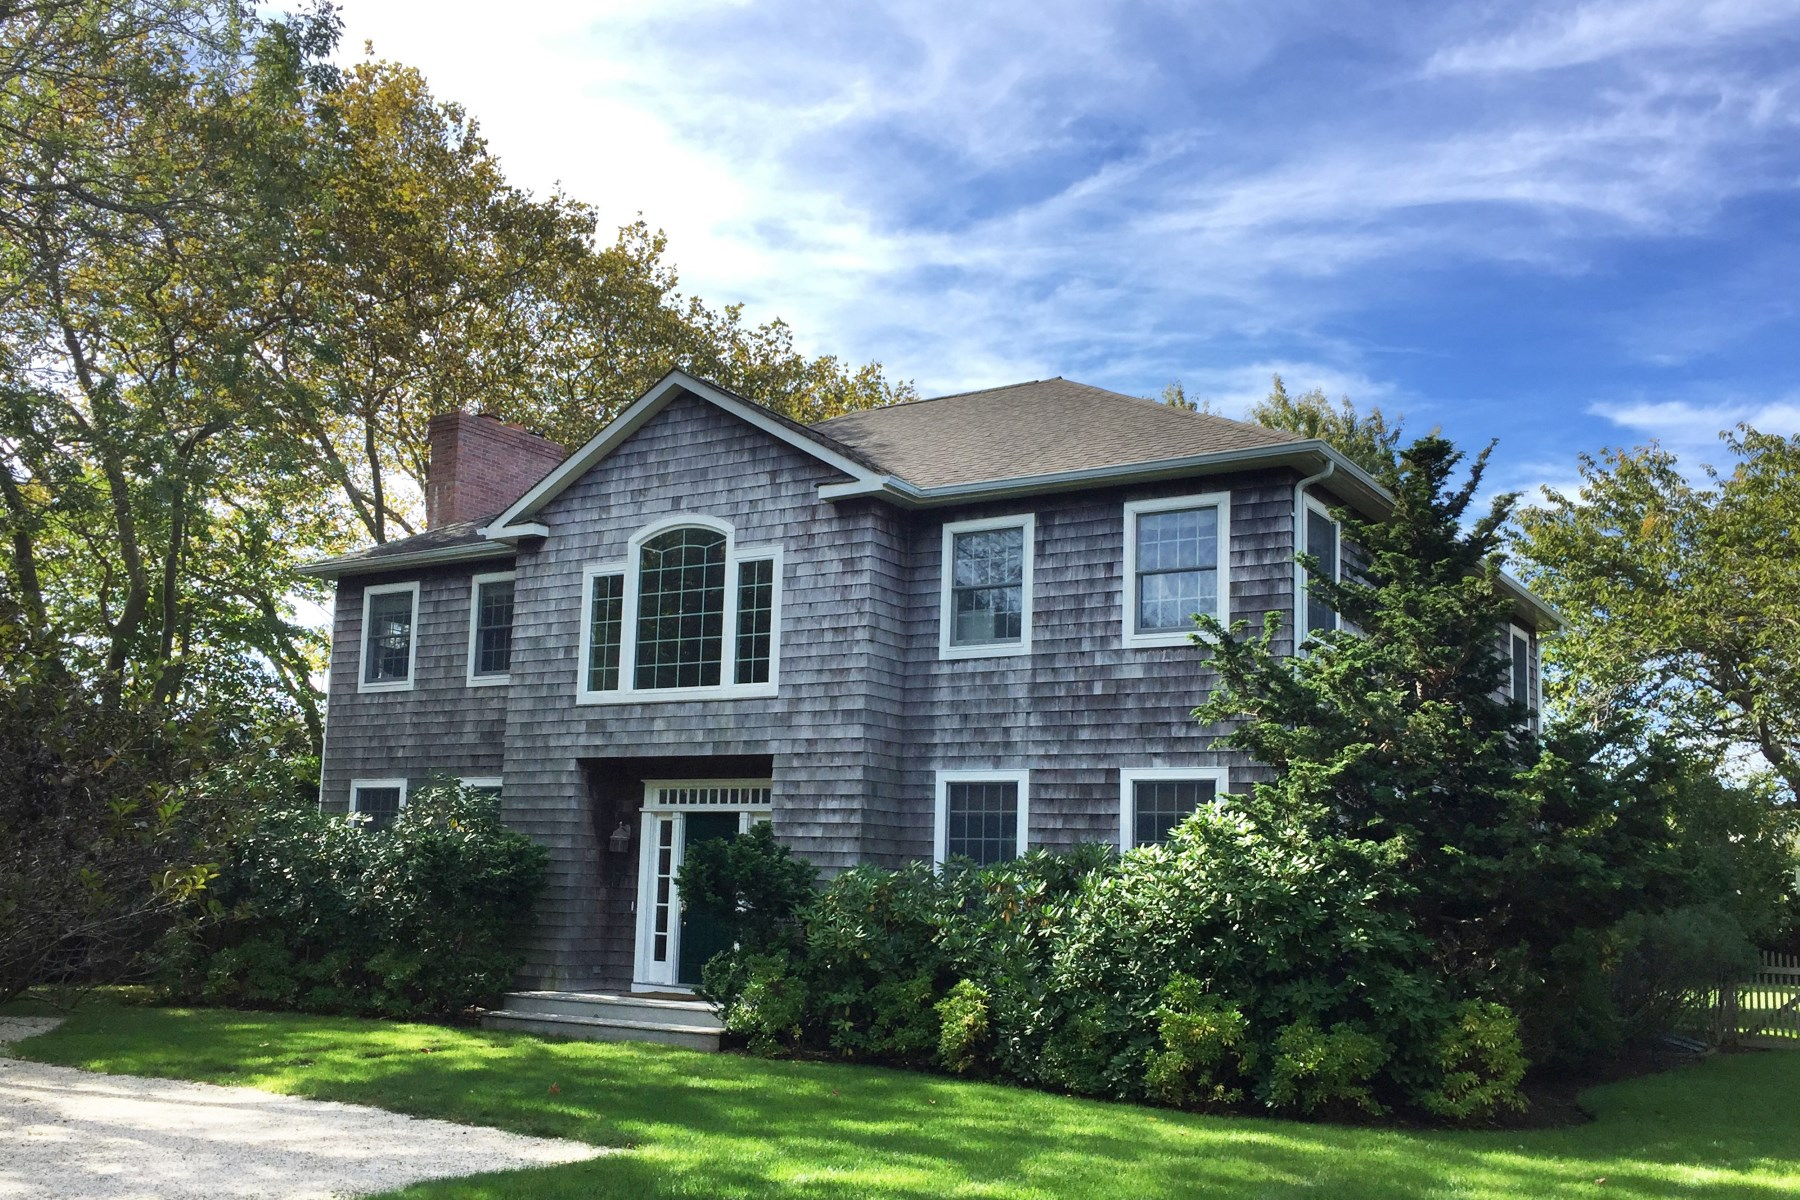 Multi-Family Home for Sale at Hedges Lane Compound - A Rare Offering 82, 86 And 90 Hedges Lane Amagansett, New York 11930 United States